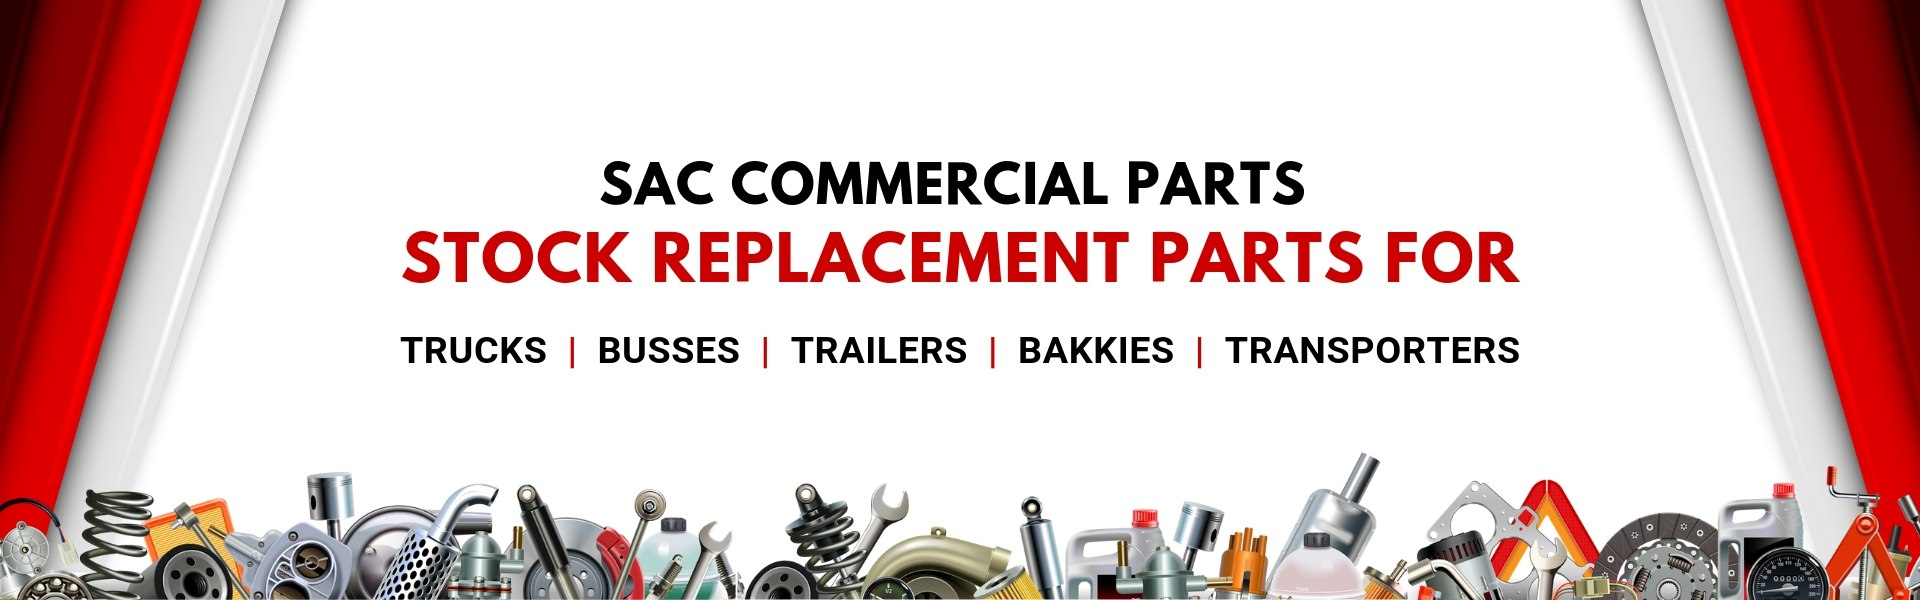 SAC Light Commercials Parts | LCV